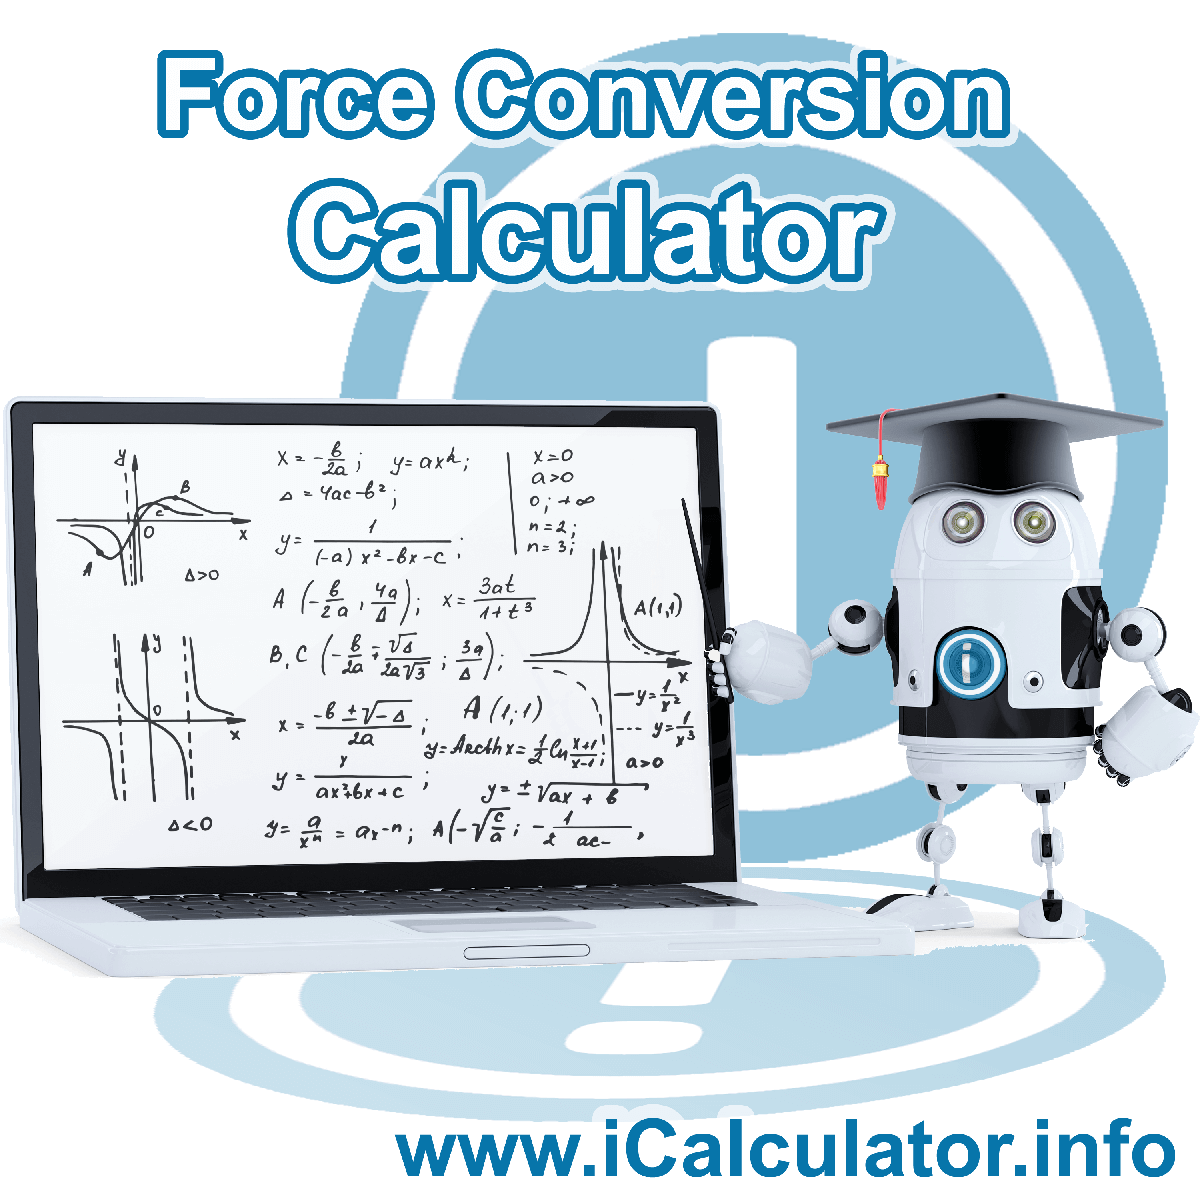 Force Conversion Calculator: This image shows Force Conversion Formula with associated calculations used by the Force Conversion Calculator